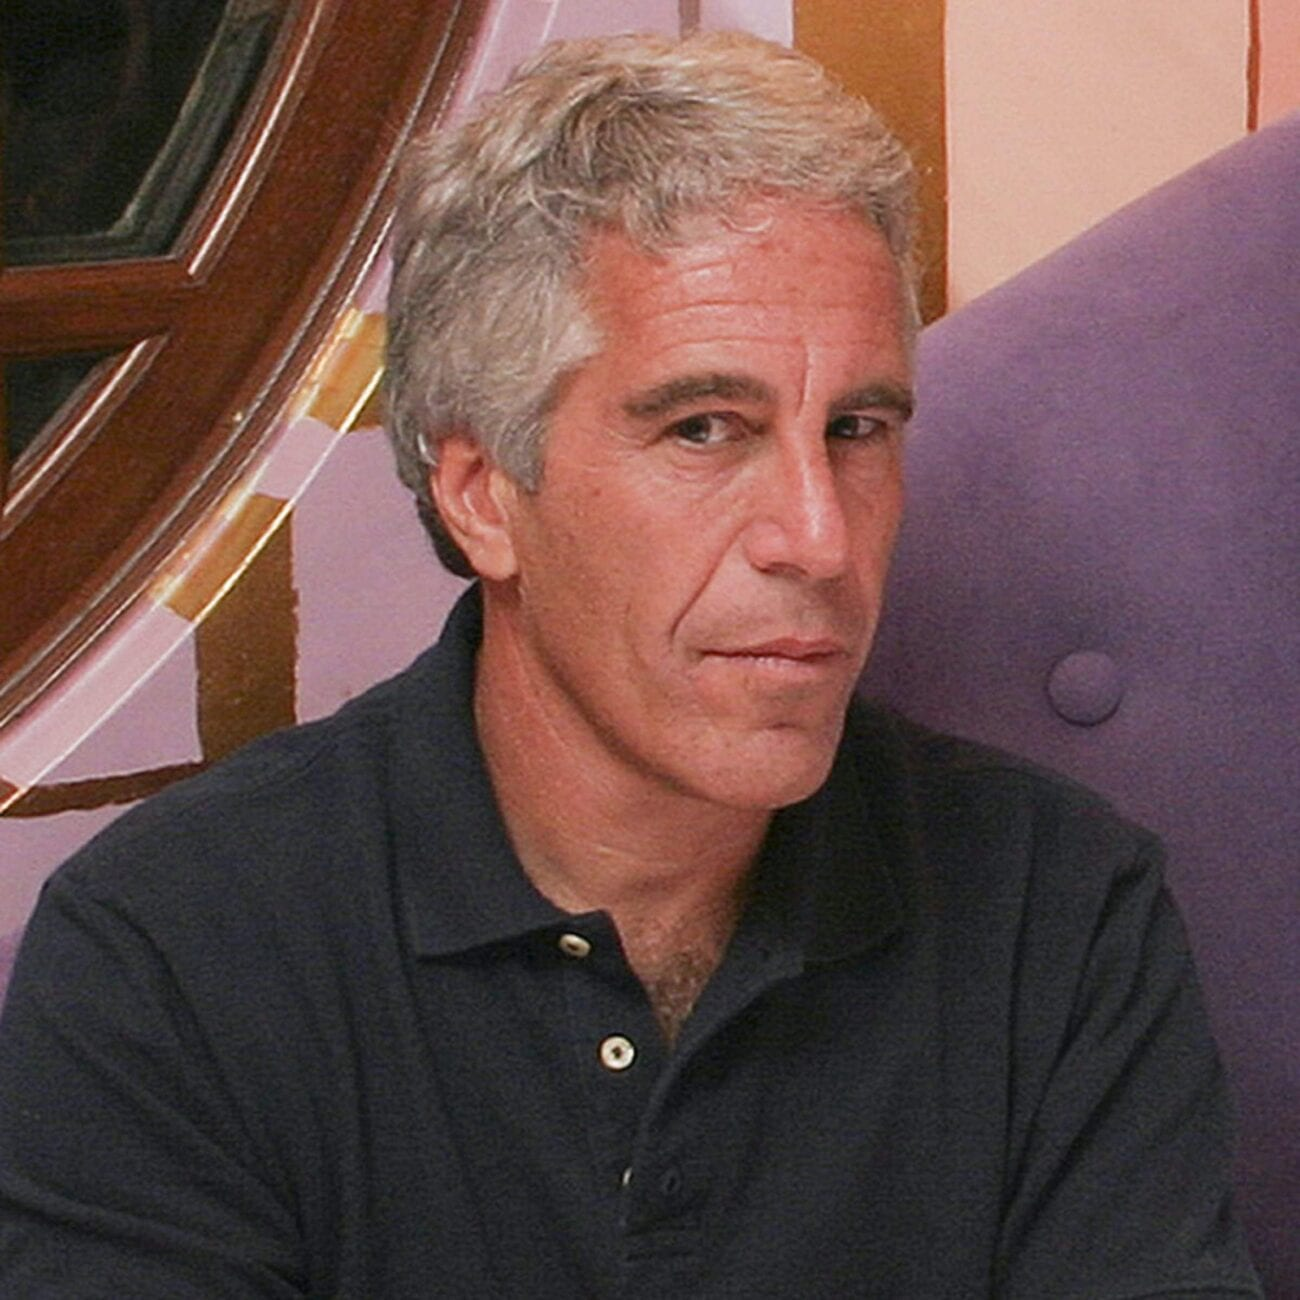 Jeffrey Epstein's net worth was estimated at upwards of $650 million when he died. How did all his millions disappear?